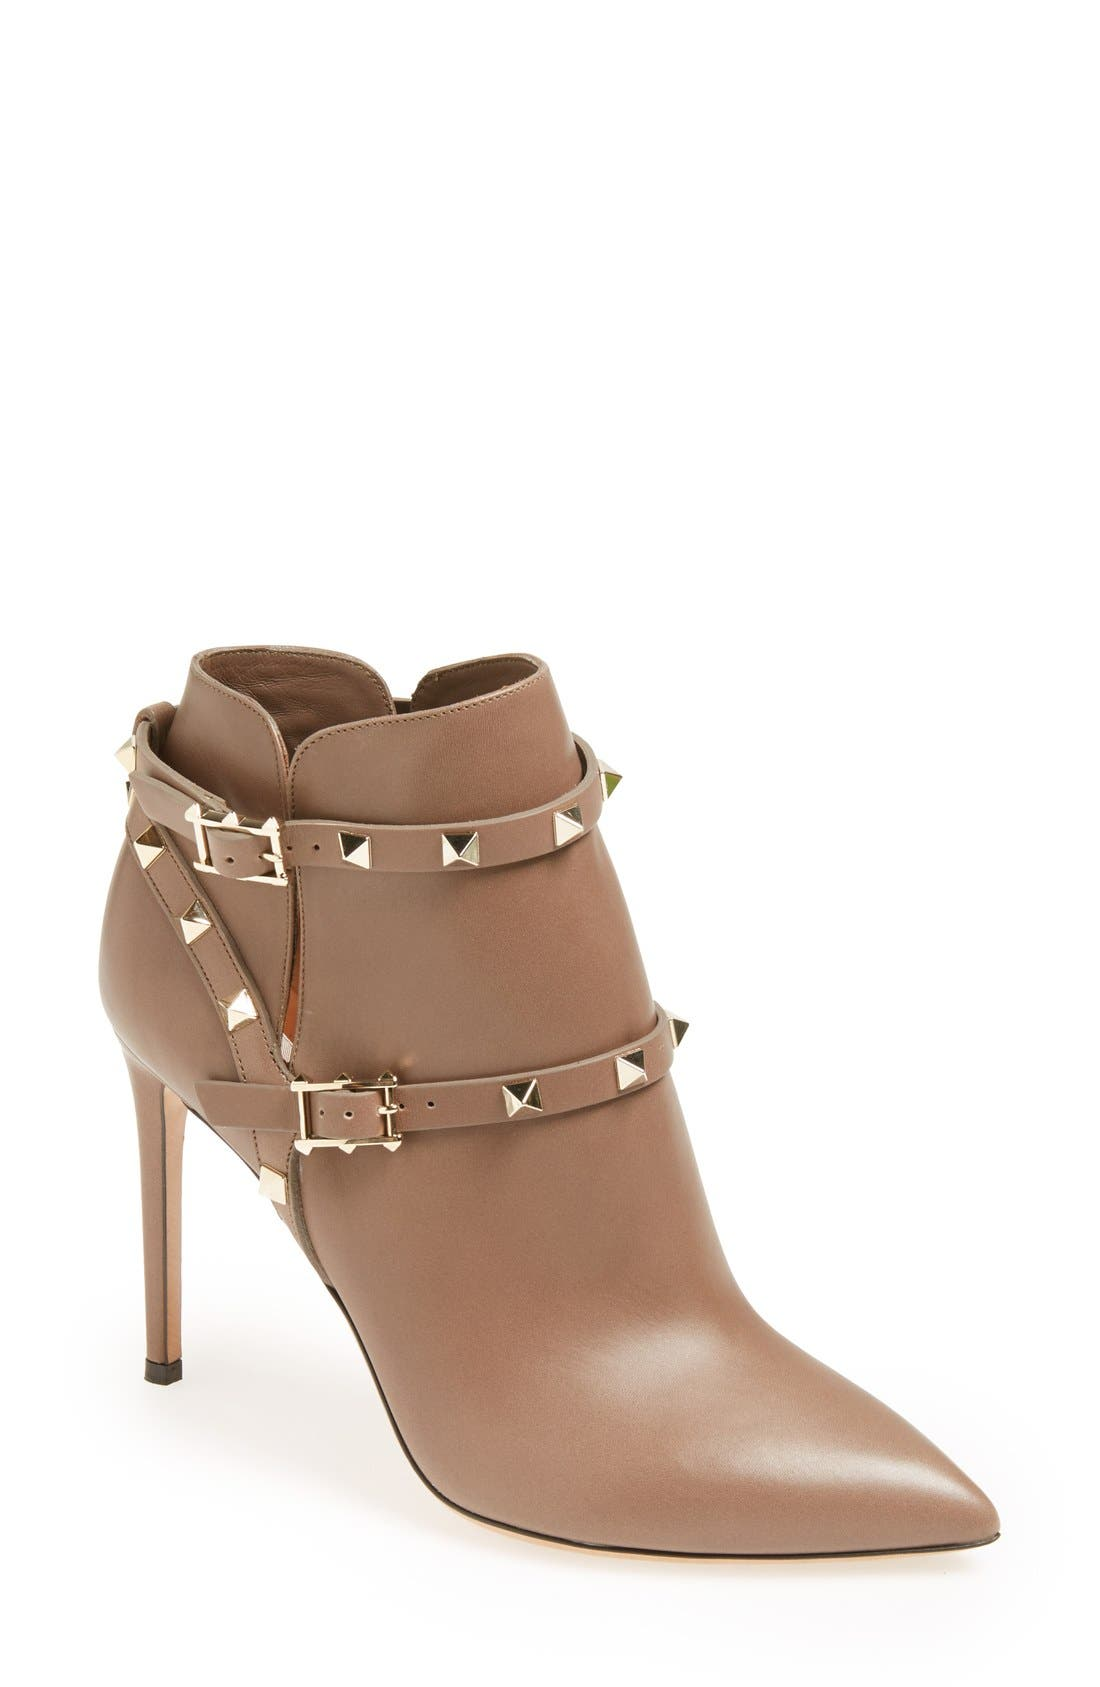 Main Image - VALENTINO GARAVANI 'Rockstud' Pointy Toe Calfskin Leather Bootie (Women)